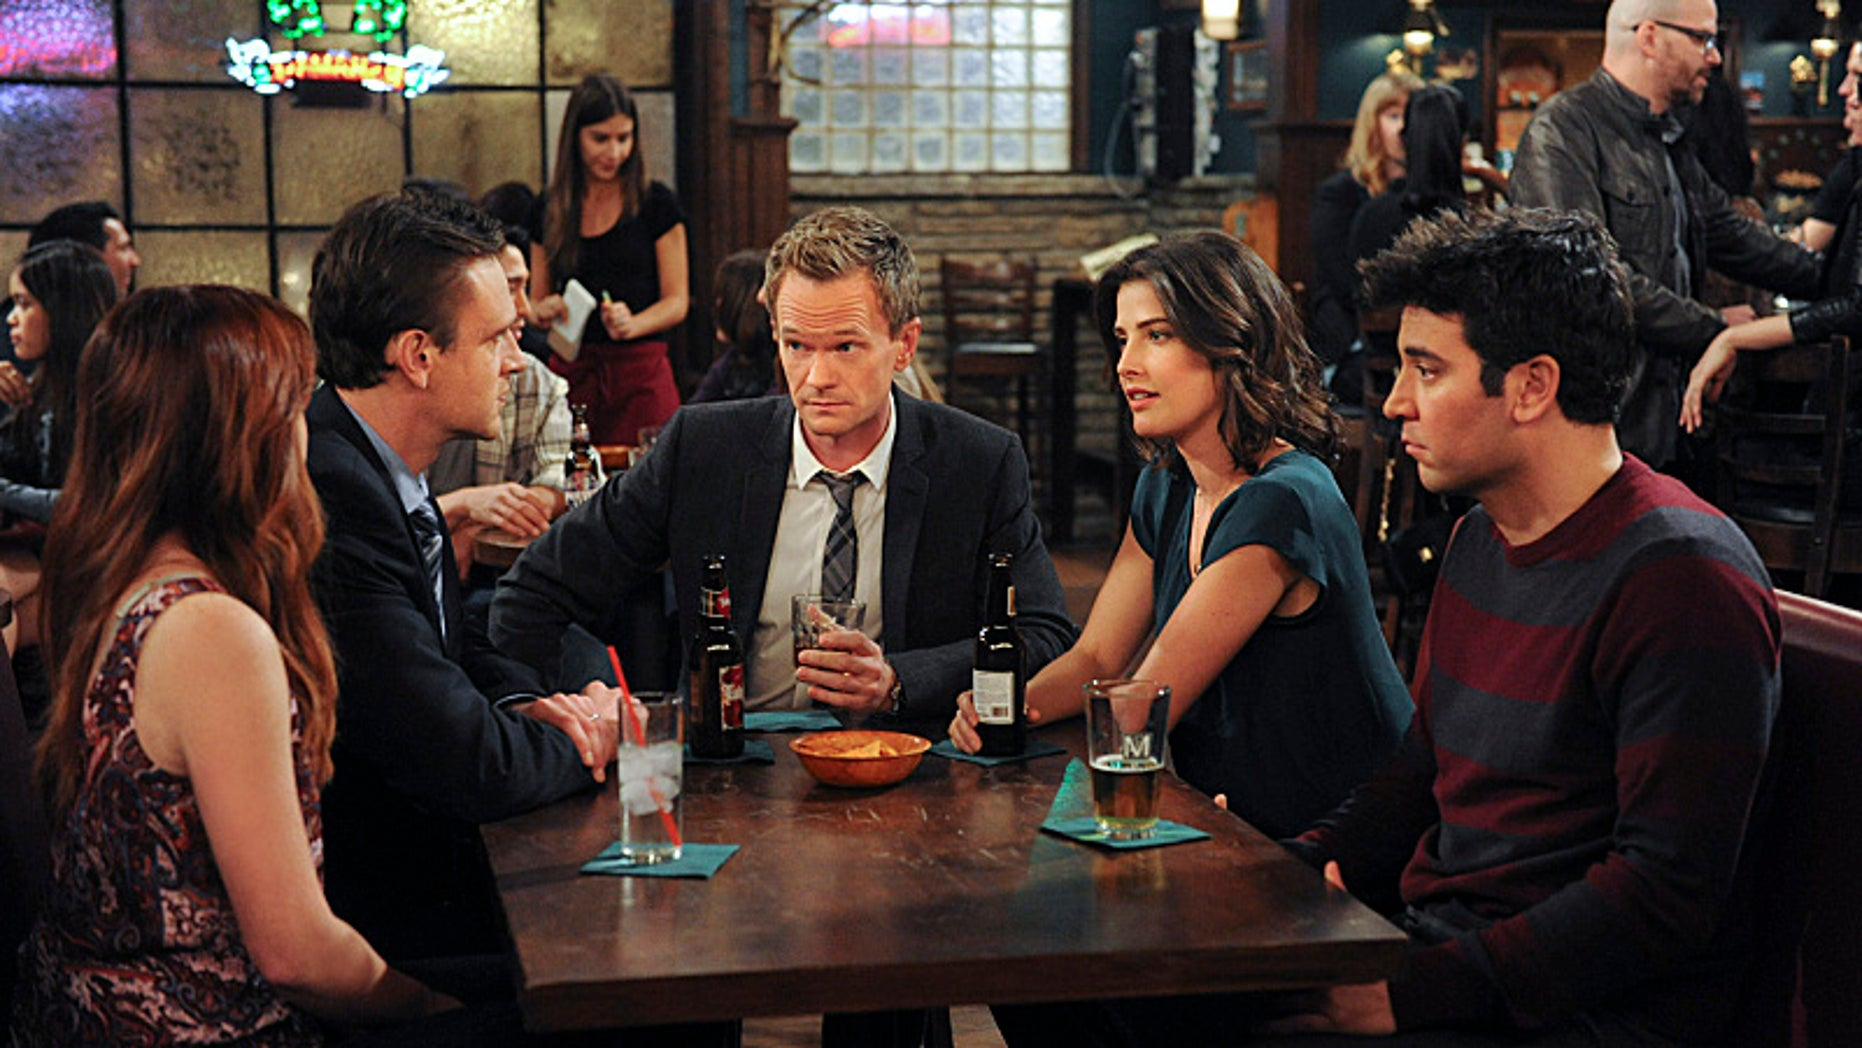 Slapsgiving #3: Slappointment in Slapmarra – In an attempt to deliver a devastating final slap to Barney, Marshall explains how he mastered the Slap of A Million Exploding Suns. Pictured: Alyson Hannigan as Lily, Jason Segel  as Marshall, Neil Patrick Harris as Barney, Cobie Smulders as Robin, Josh Radnor as Ted, .  Photo: Ron P. Jaffe/Fox  © 2013 Fox Television. All rights reserved